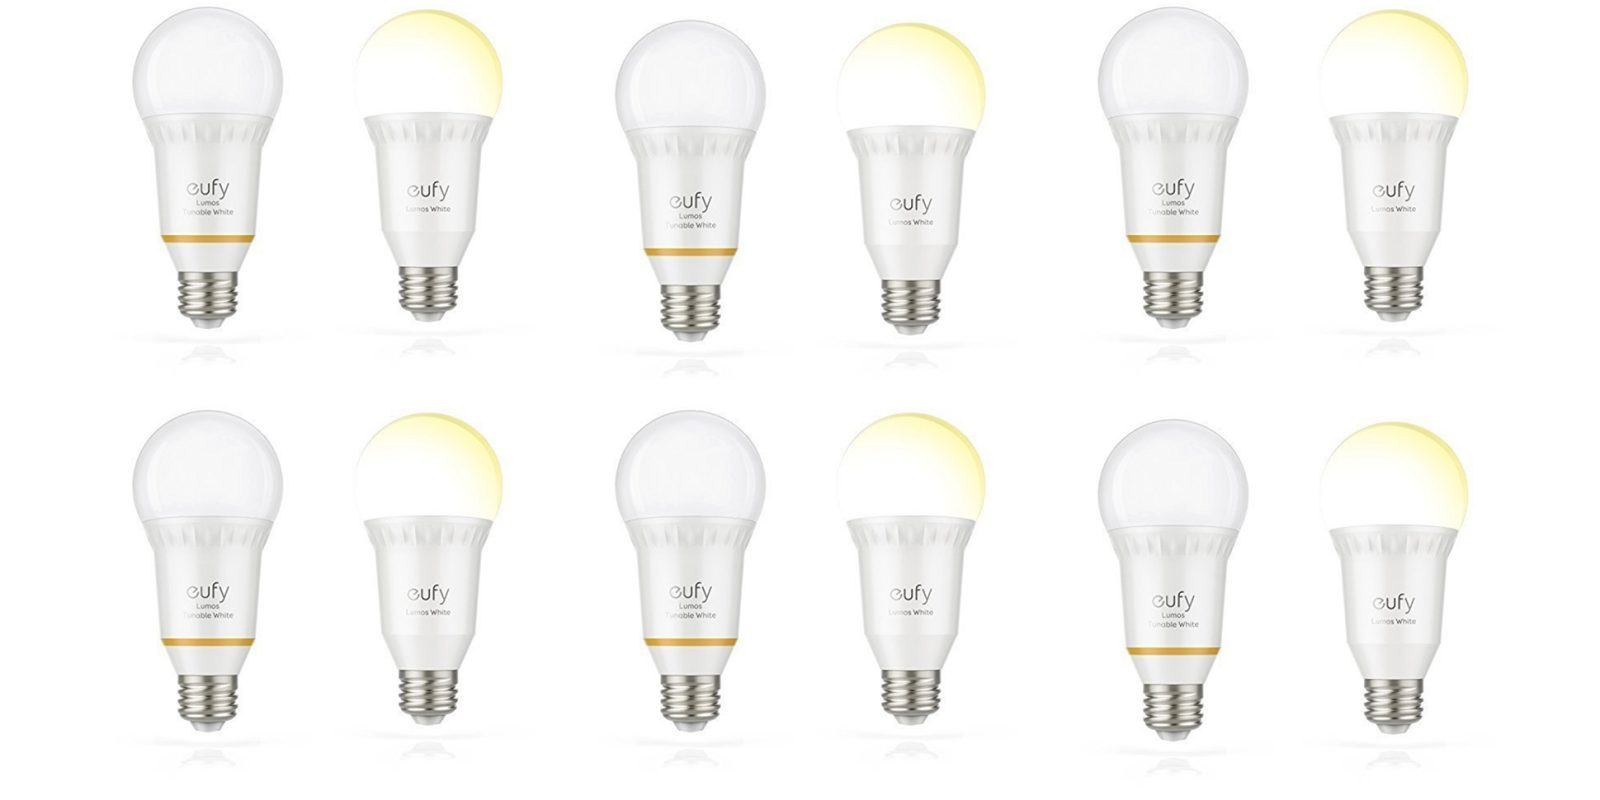 anker 39 s new smart led light bulbs on sale from 17 prime shipped no hub required 9to5toys. Black Bedroom Furniture Sets. Home Design Ideas